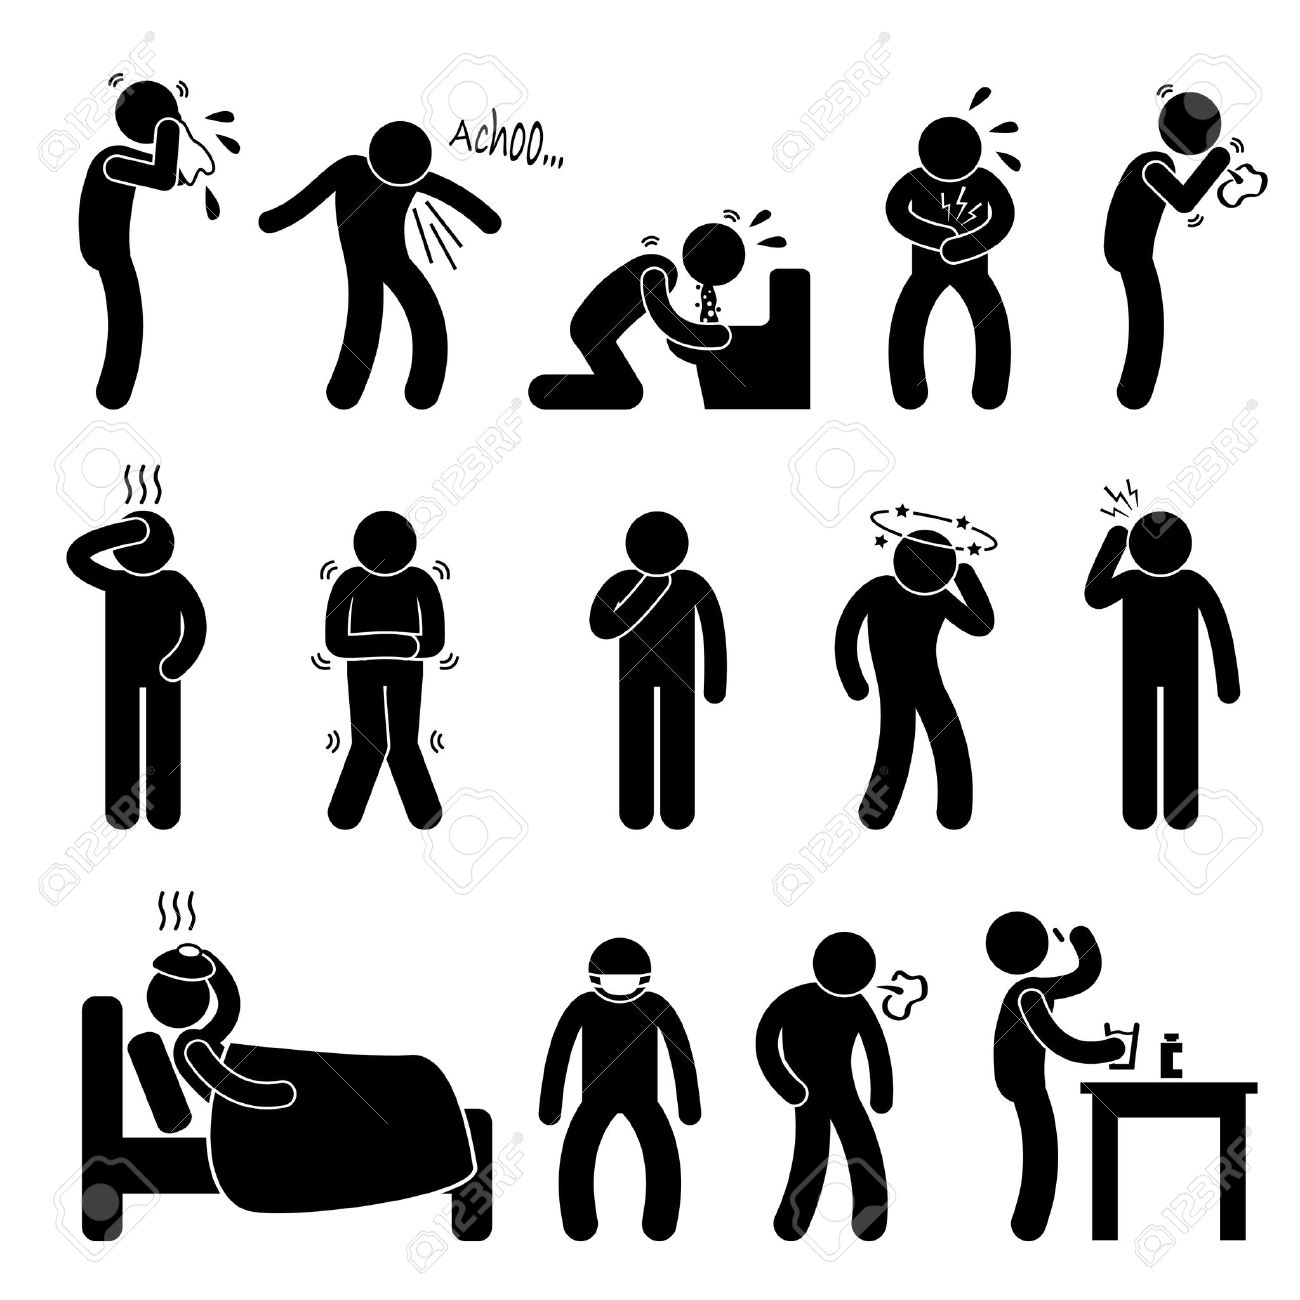 3d White People Man Lying In Bed With Flu And Fever White Background - Sickness sick ill fever flu cold sneeze cough vomit disease stick figure pictogram icon